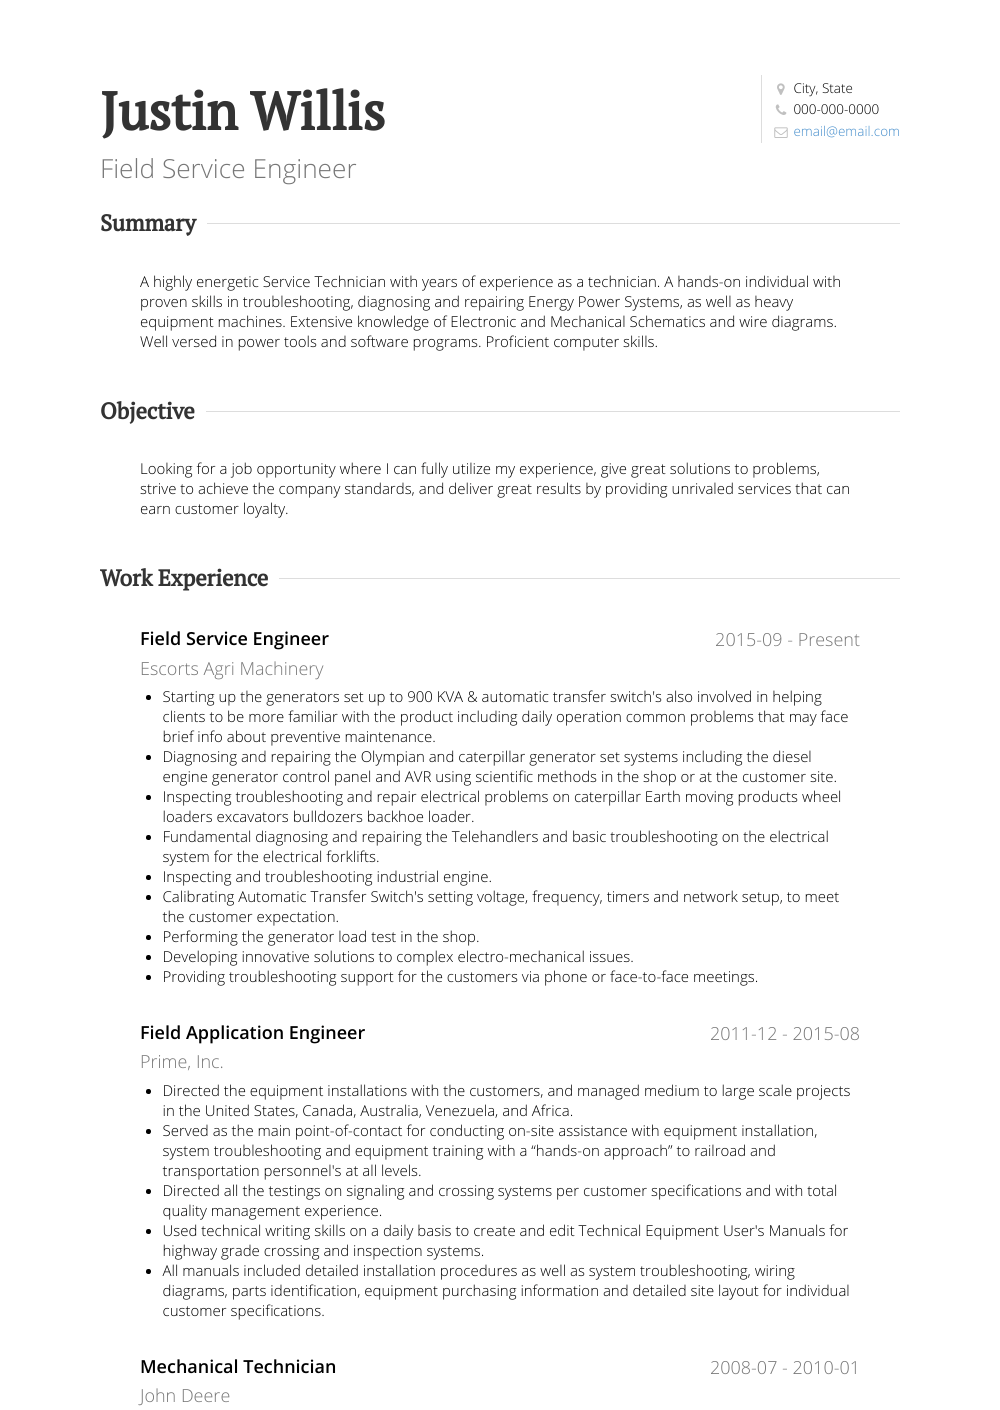 Field Service Engineer Resume Sample and Template